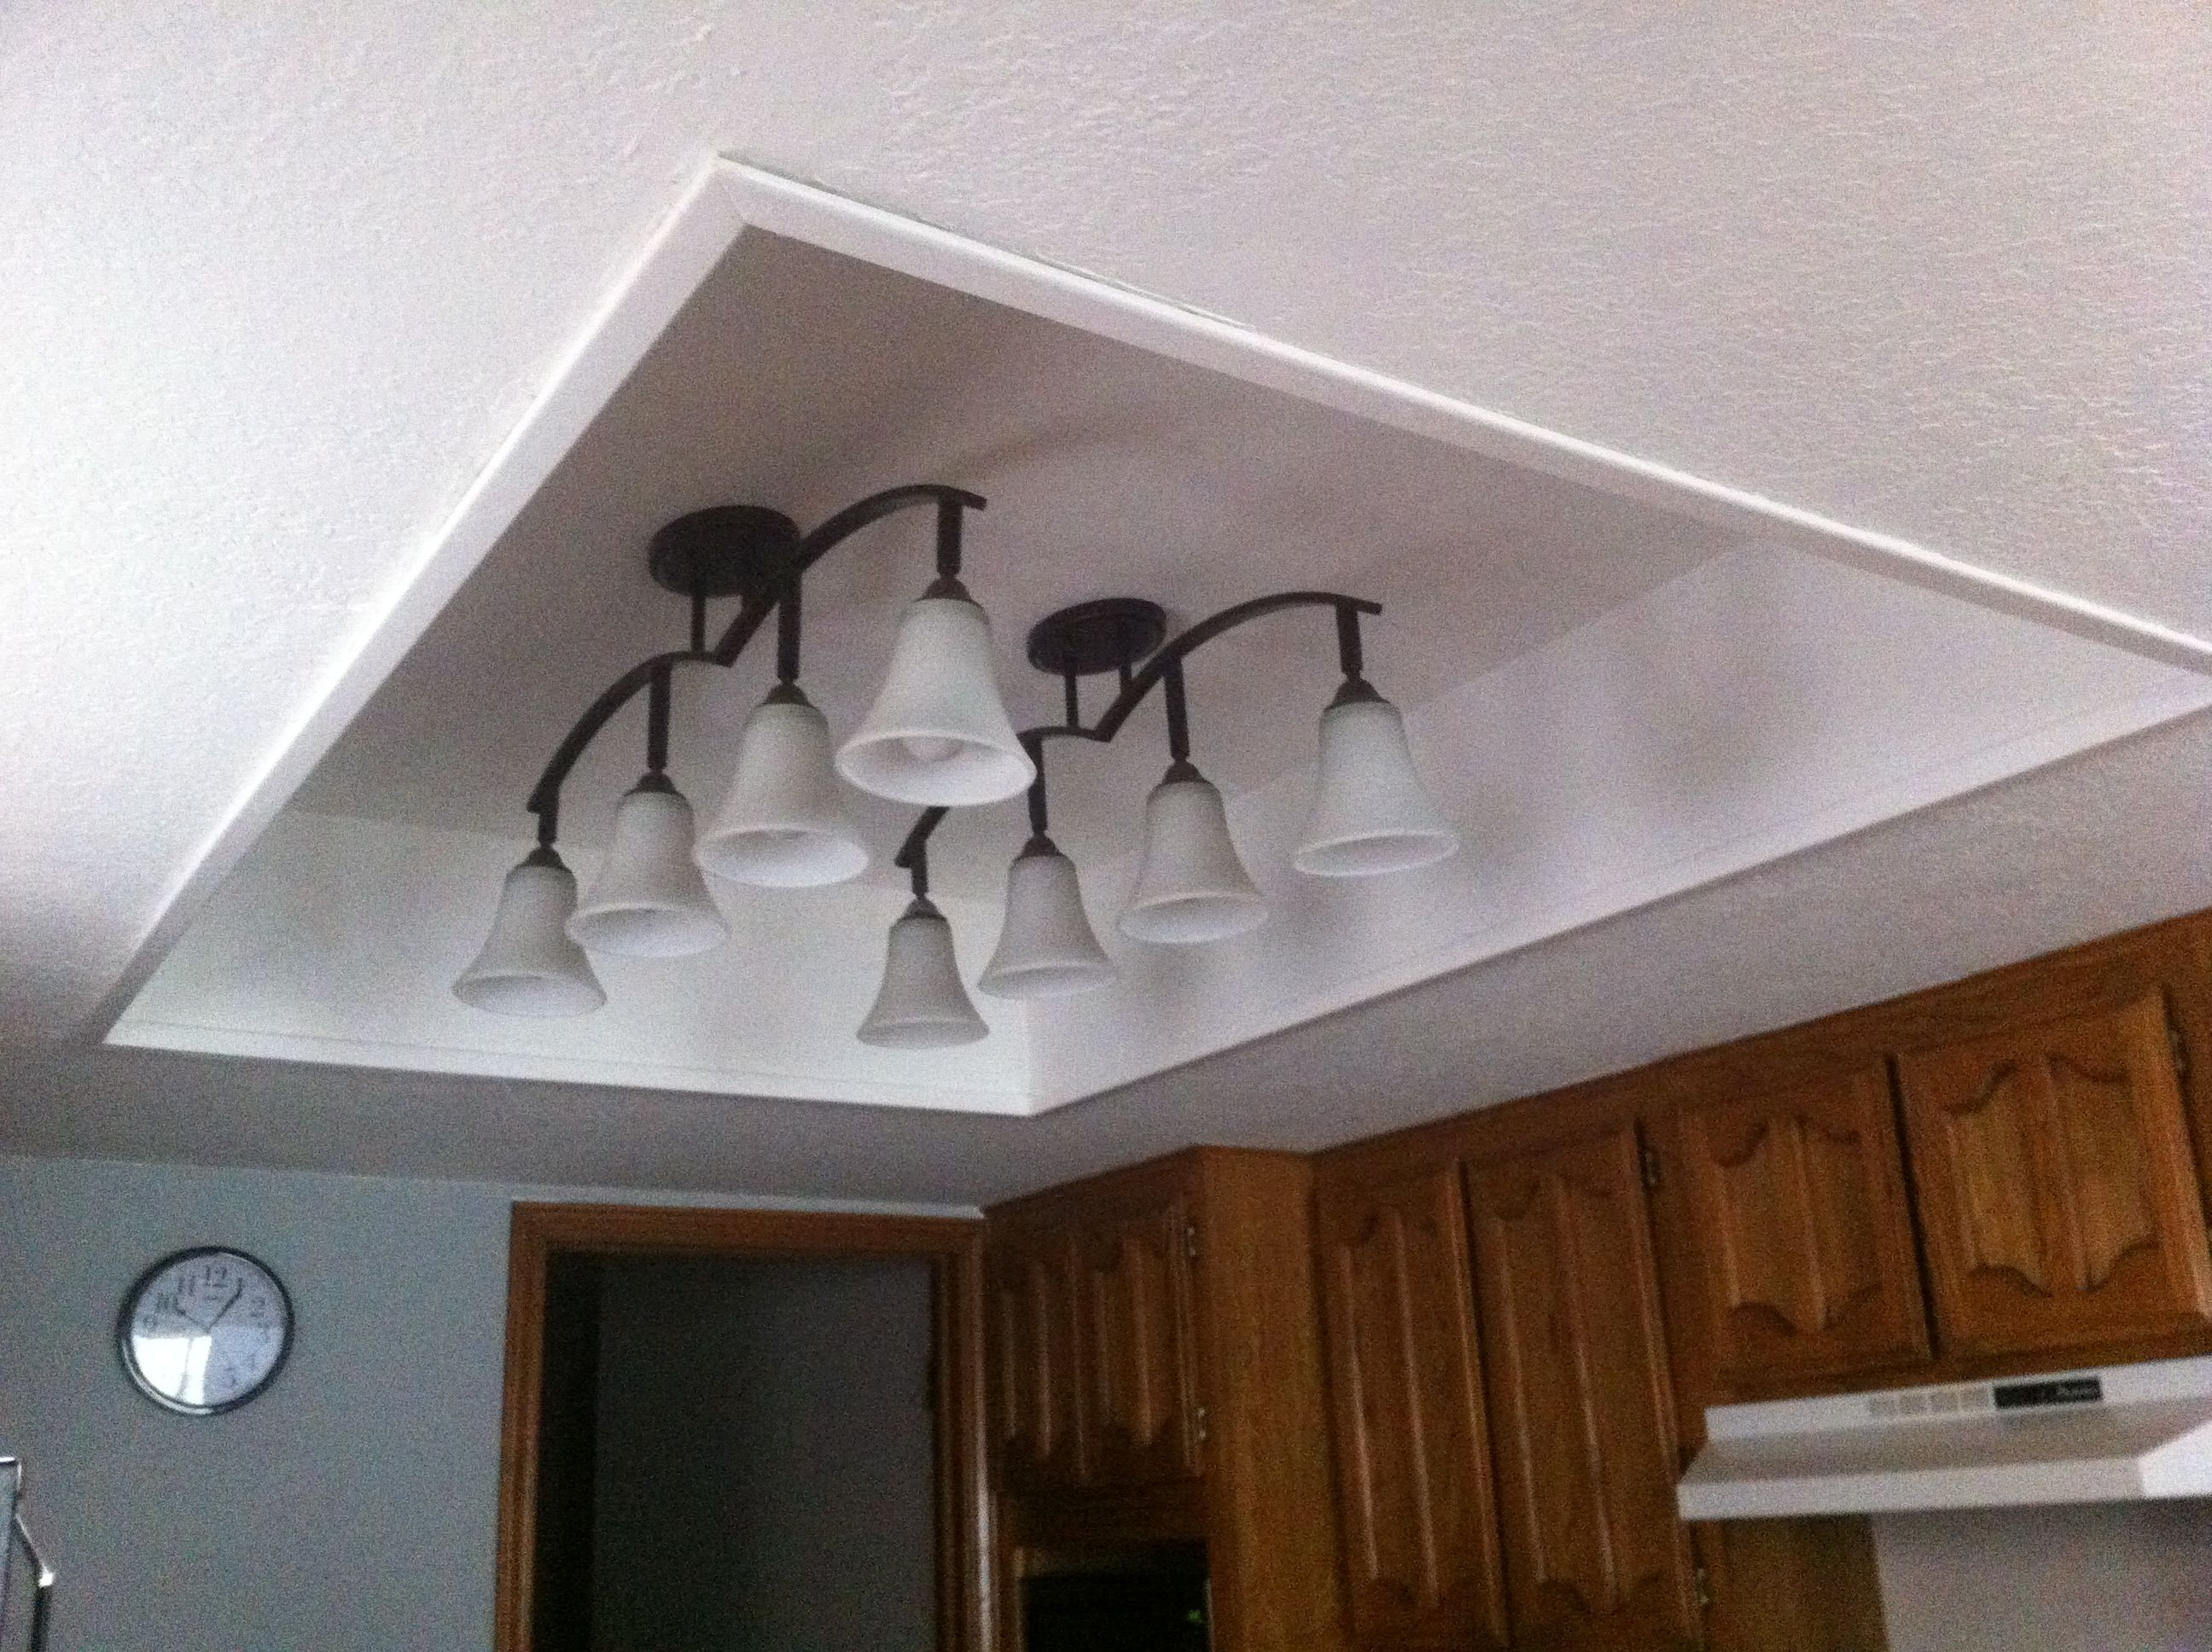 Kitchen Fluorescent Light Fixture Covers 1000 Ideas About Fluorescent Light Fixtures On Pinterest